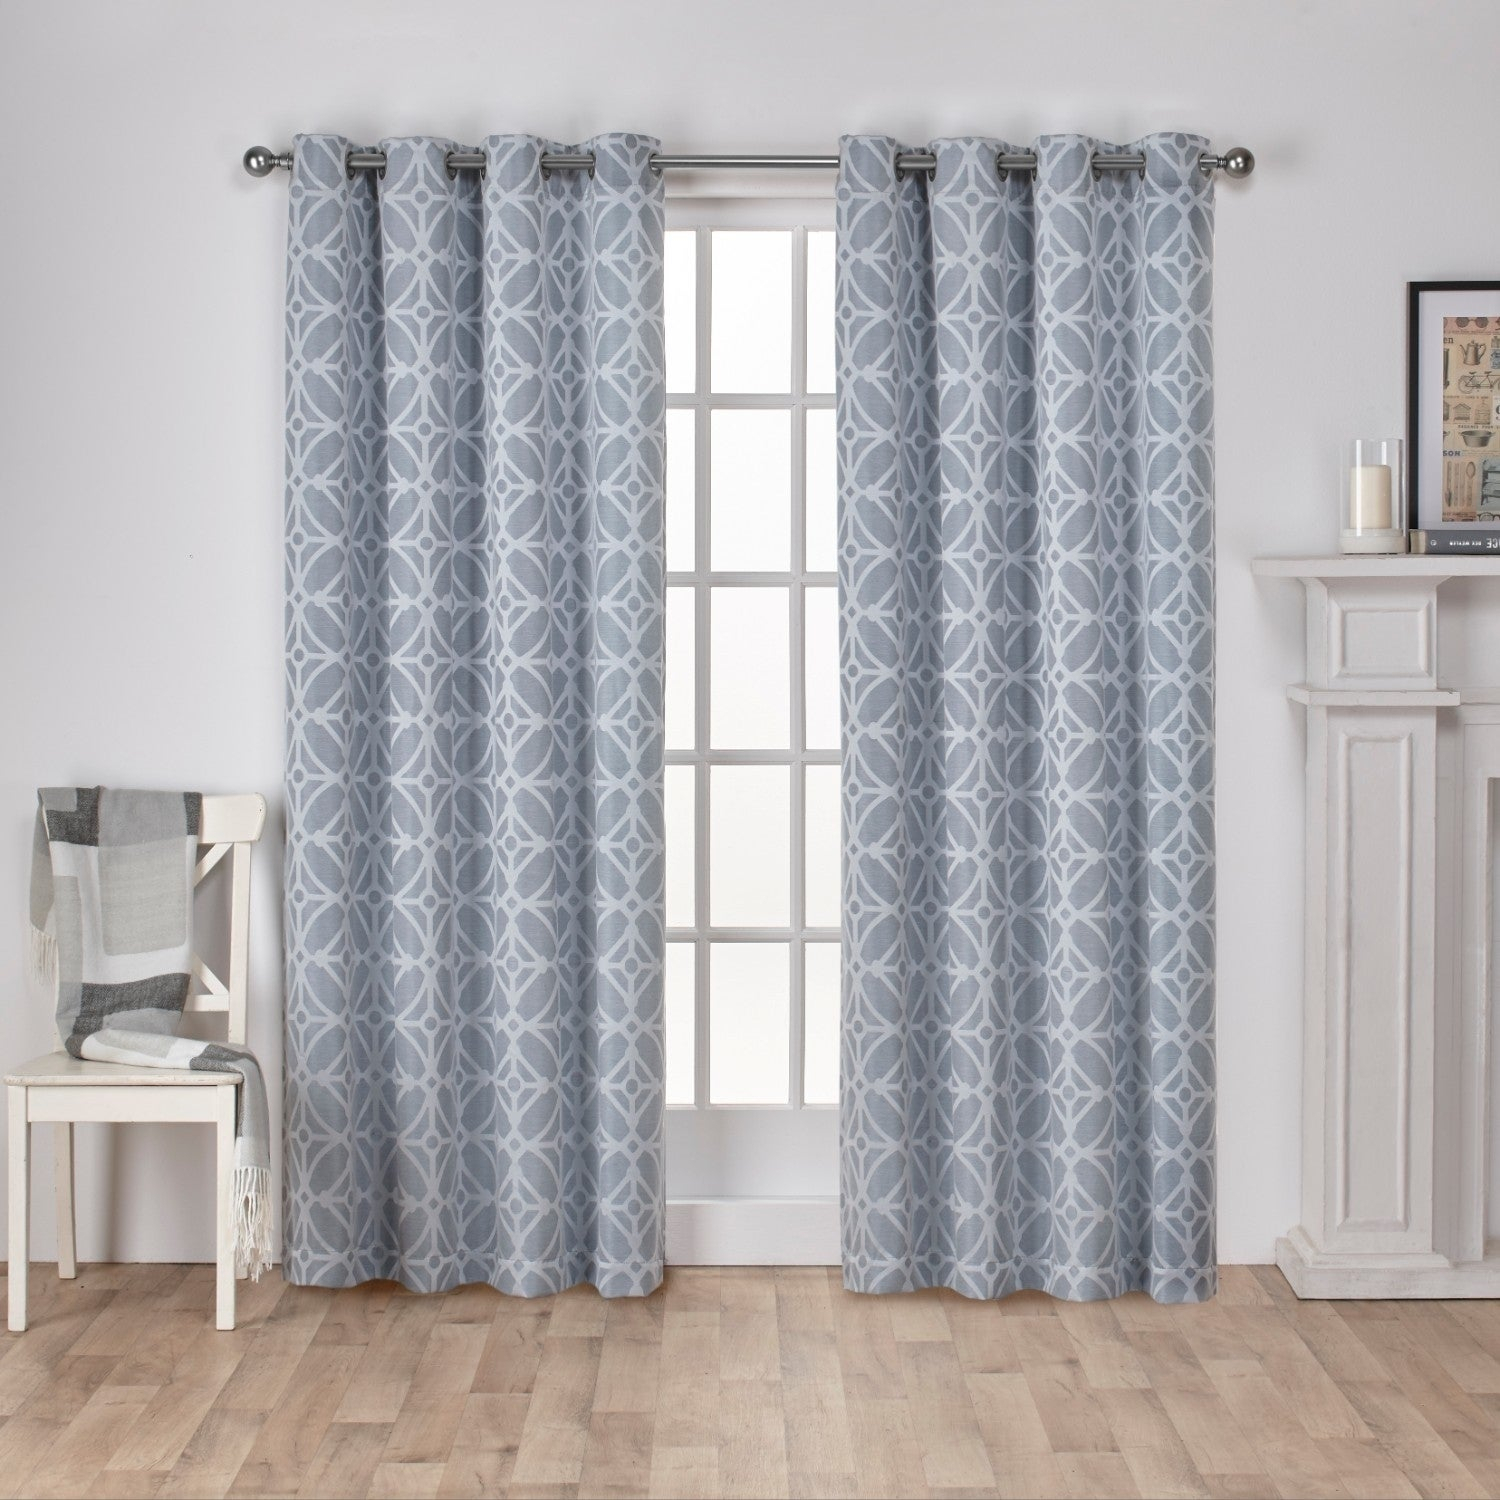 Details About Ati Home Cressy Jacquard Grommet Top Curtain Panel Pair Intended For Wilshire Burnout Grommet Top Curtain Panel Pairs (View 23 of 30)